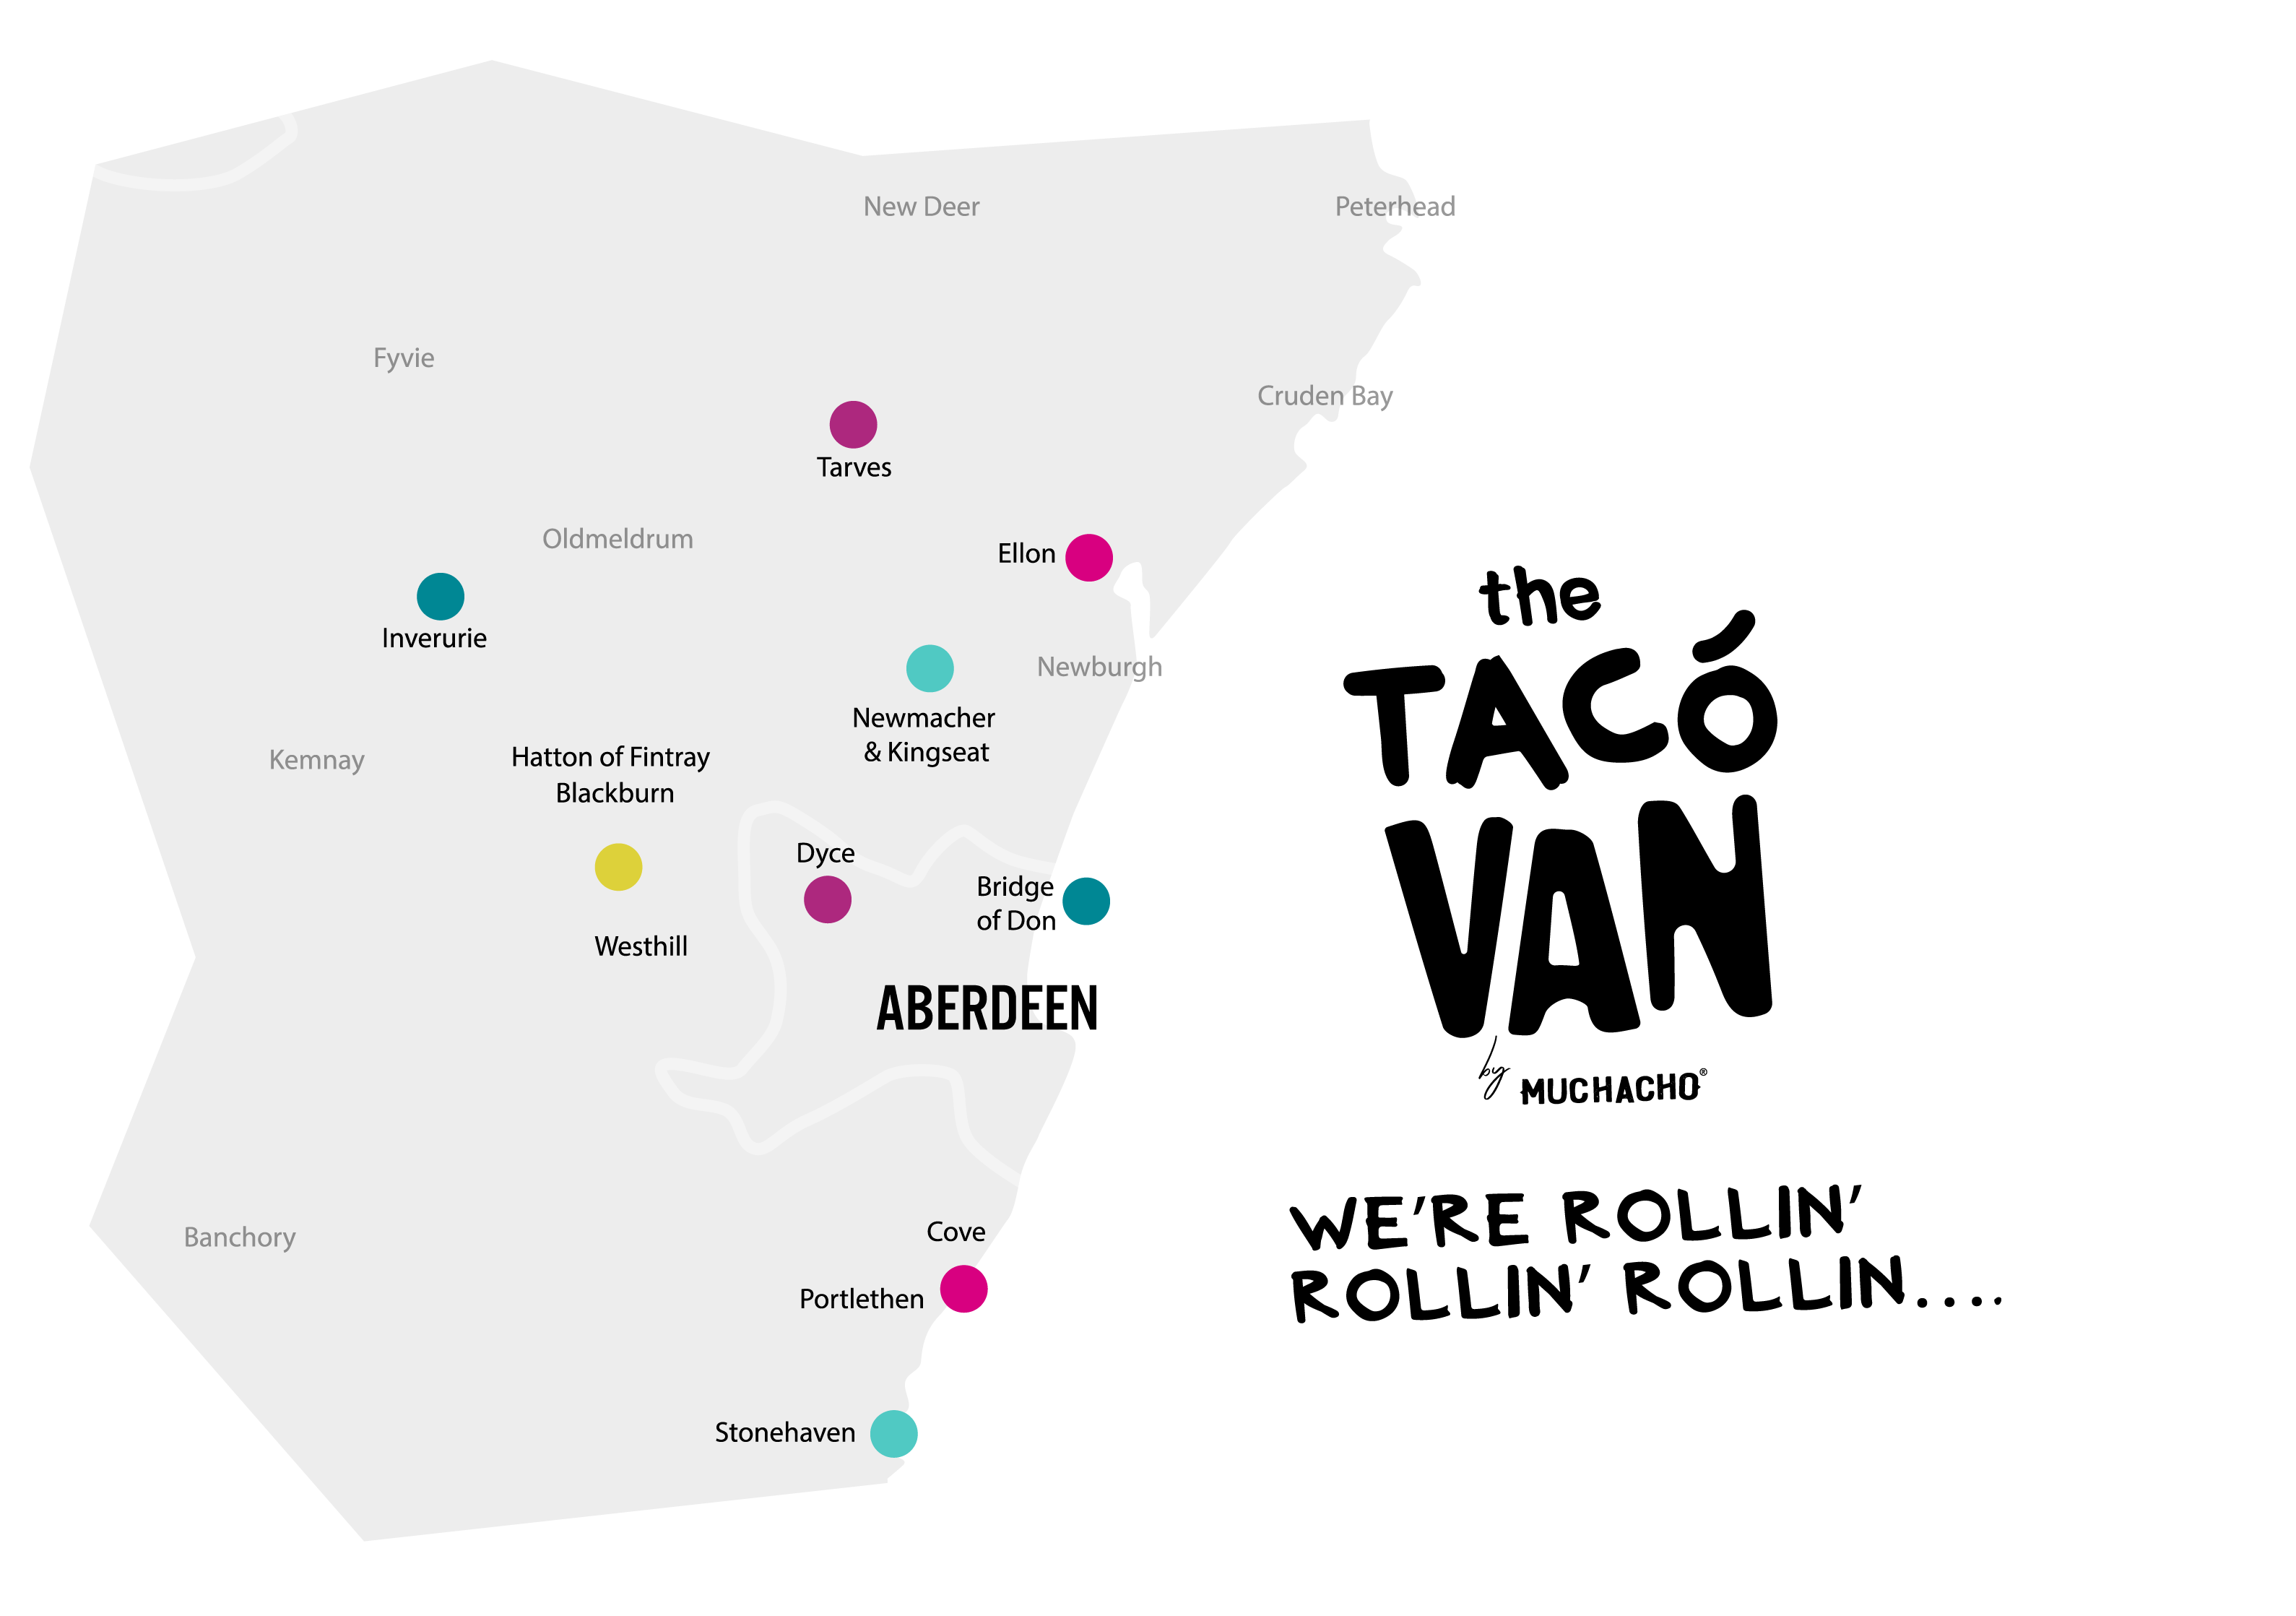 Taco Van North East Scotland Locations